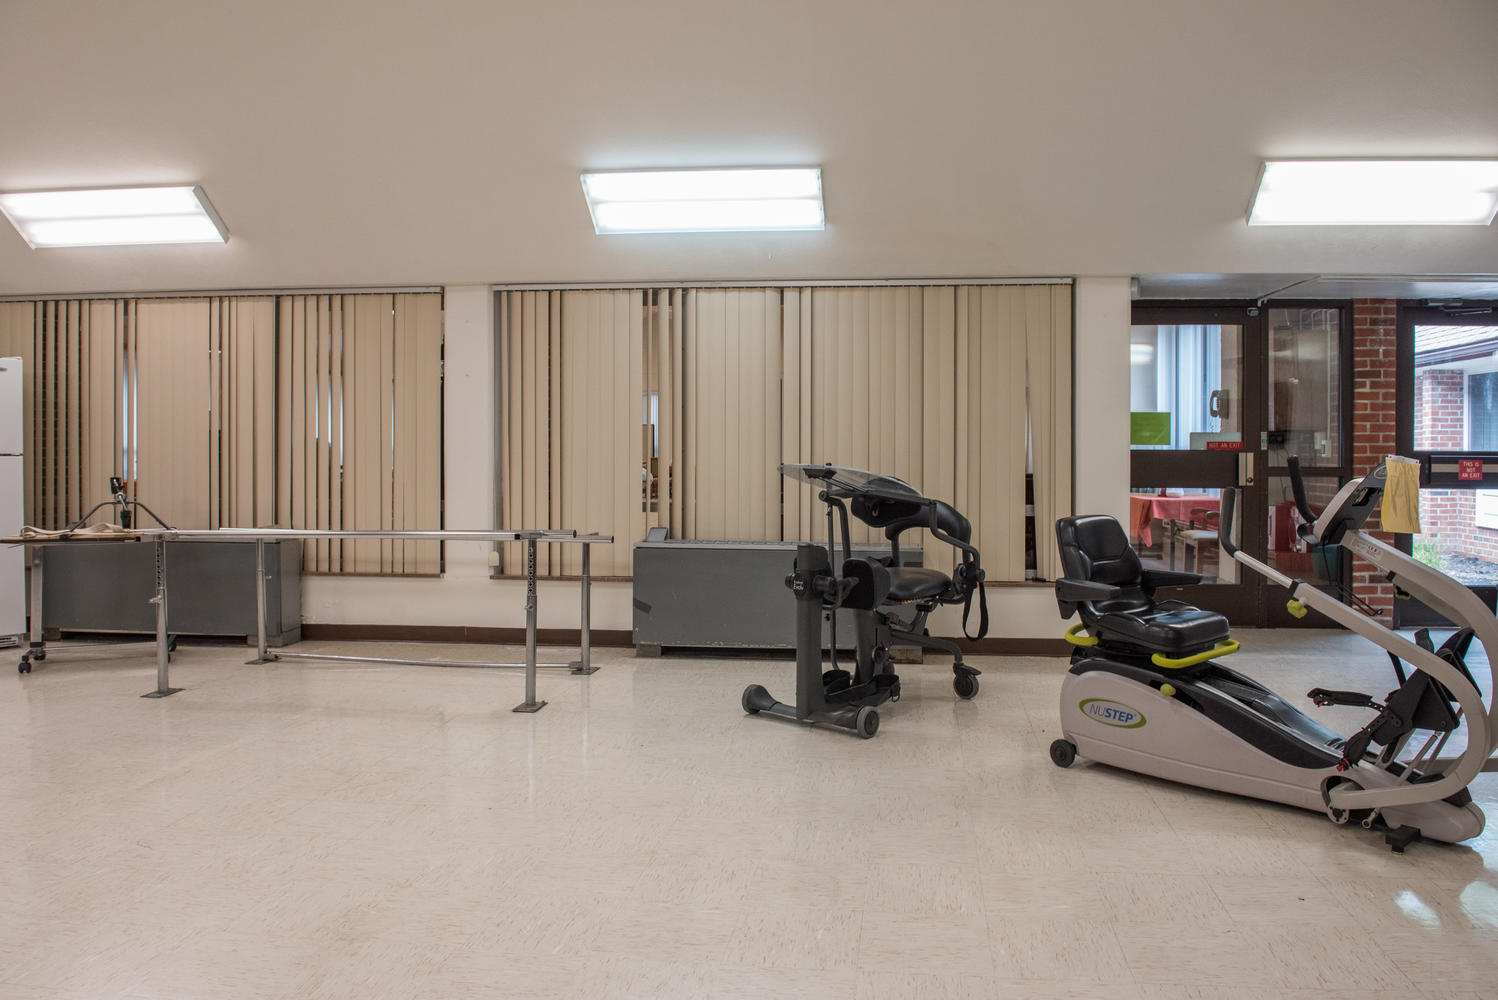 Stonerise Princeton Therapy and Rehabilitation area with equipment